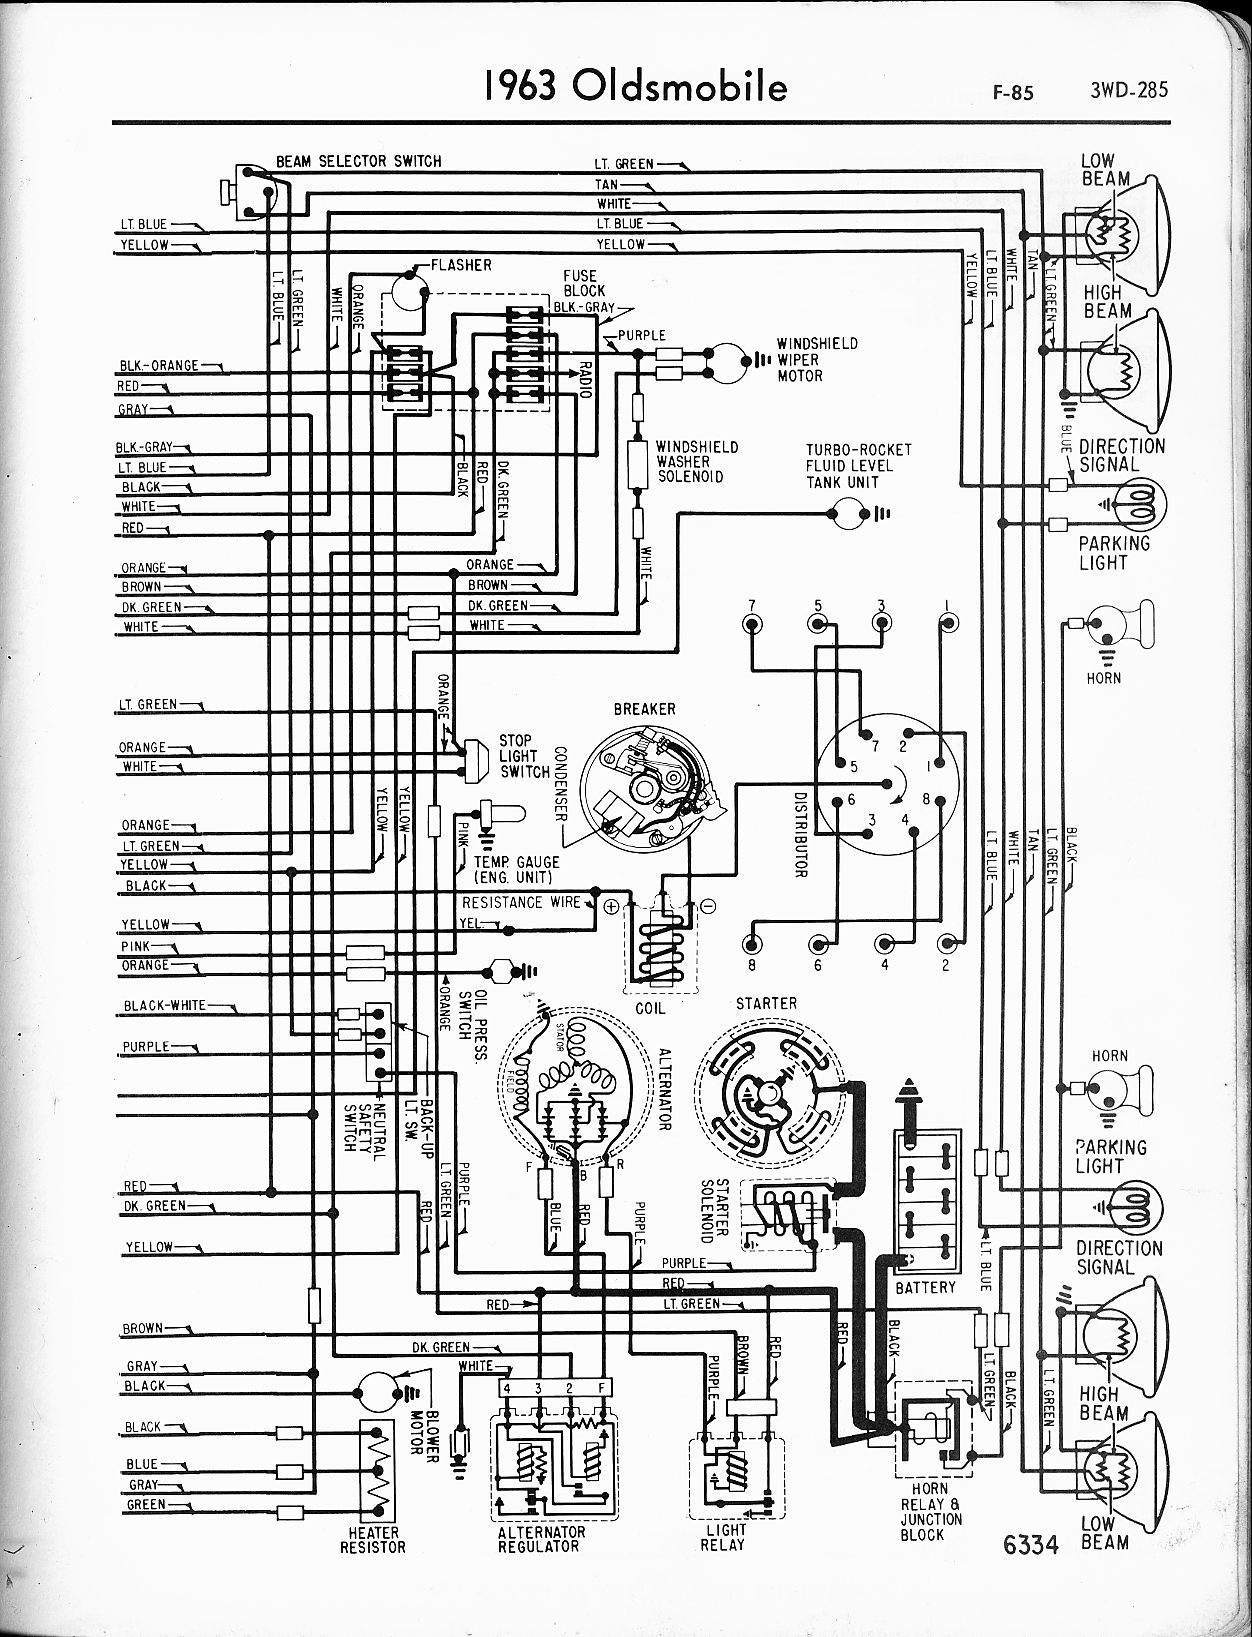 MWire5765 285 oldsmobile wiring diagrams the old car manual project caterham wiring diagram at mifinder.co